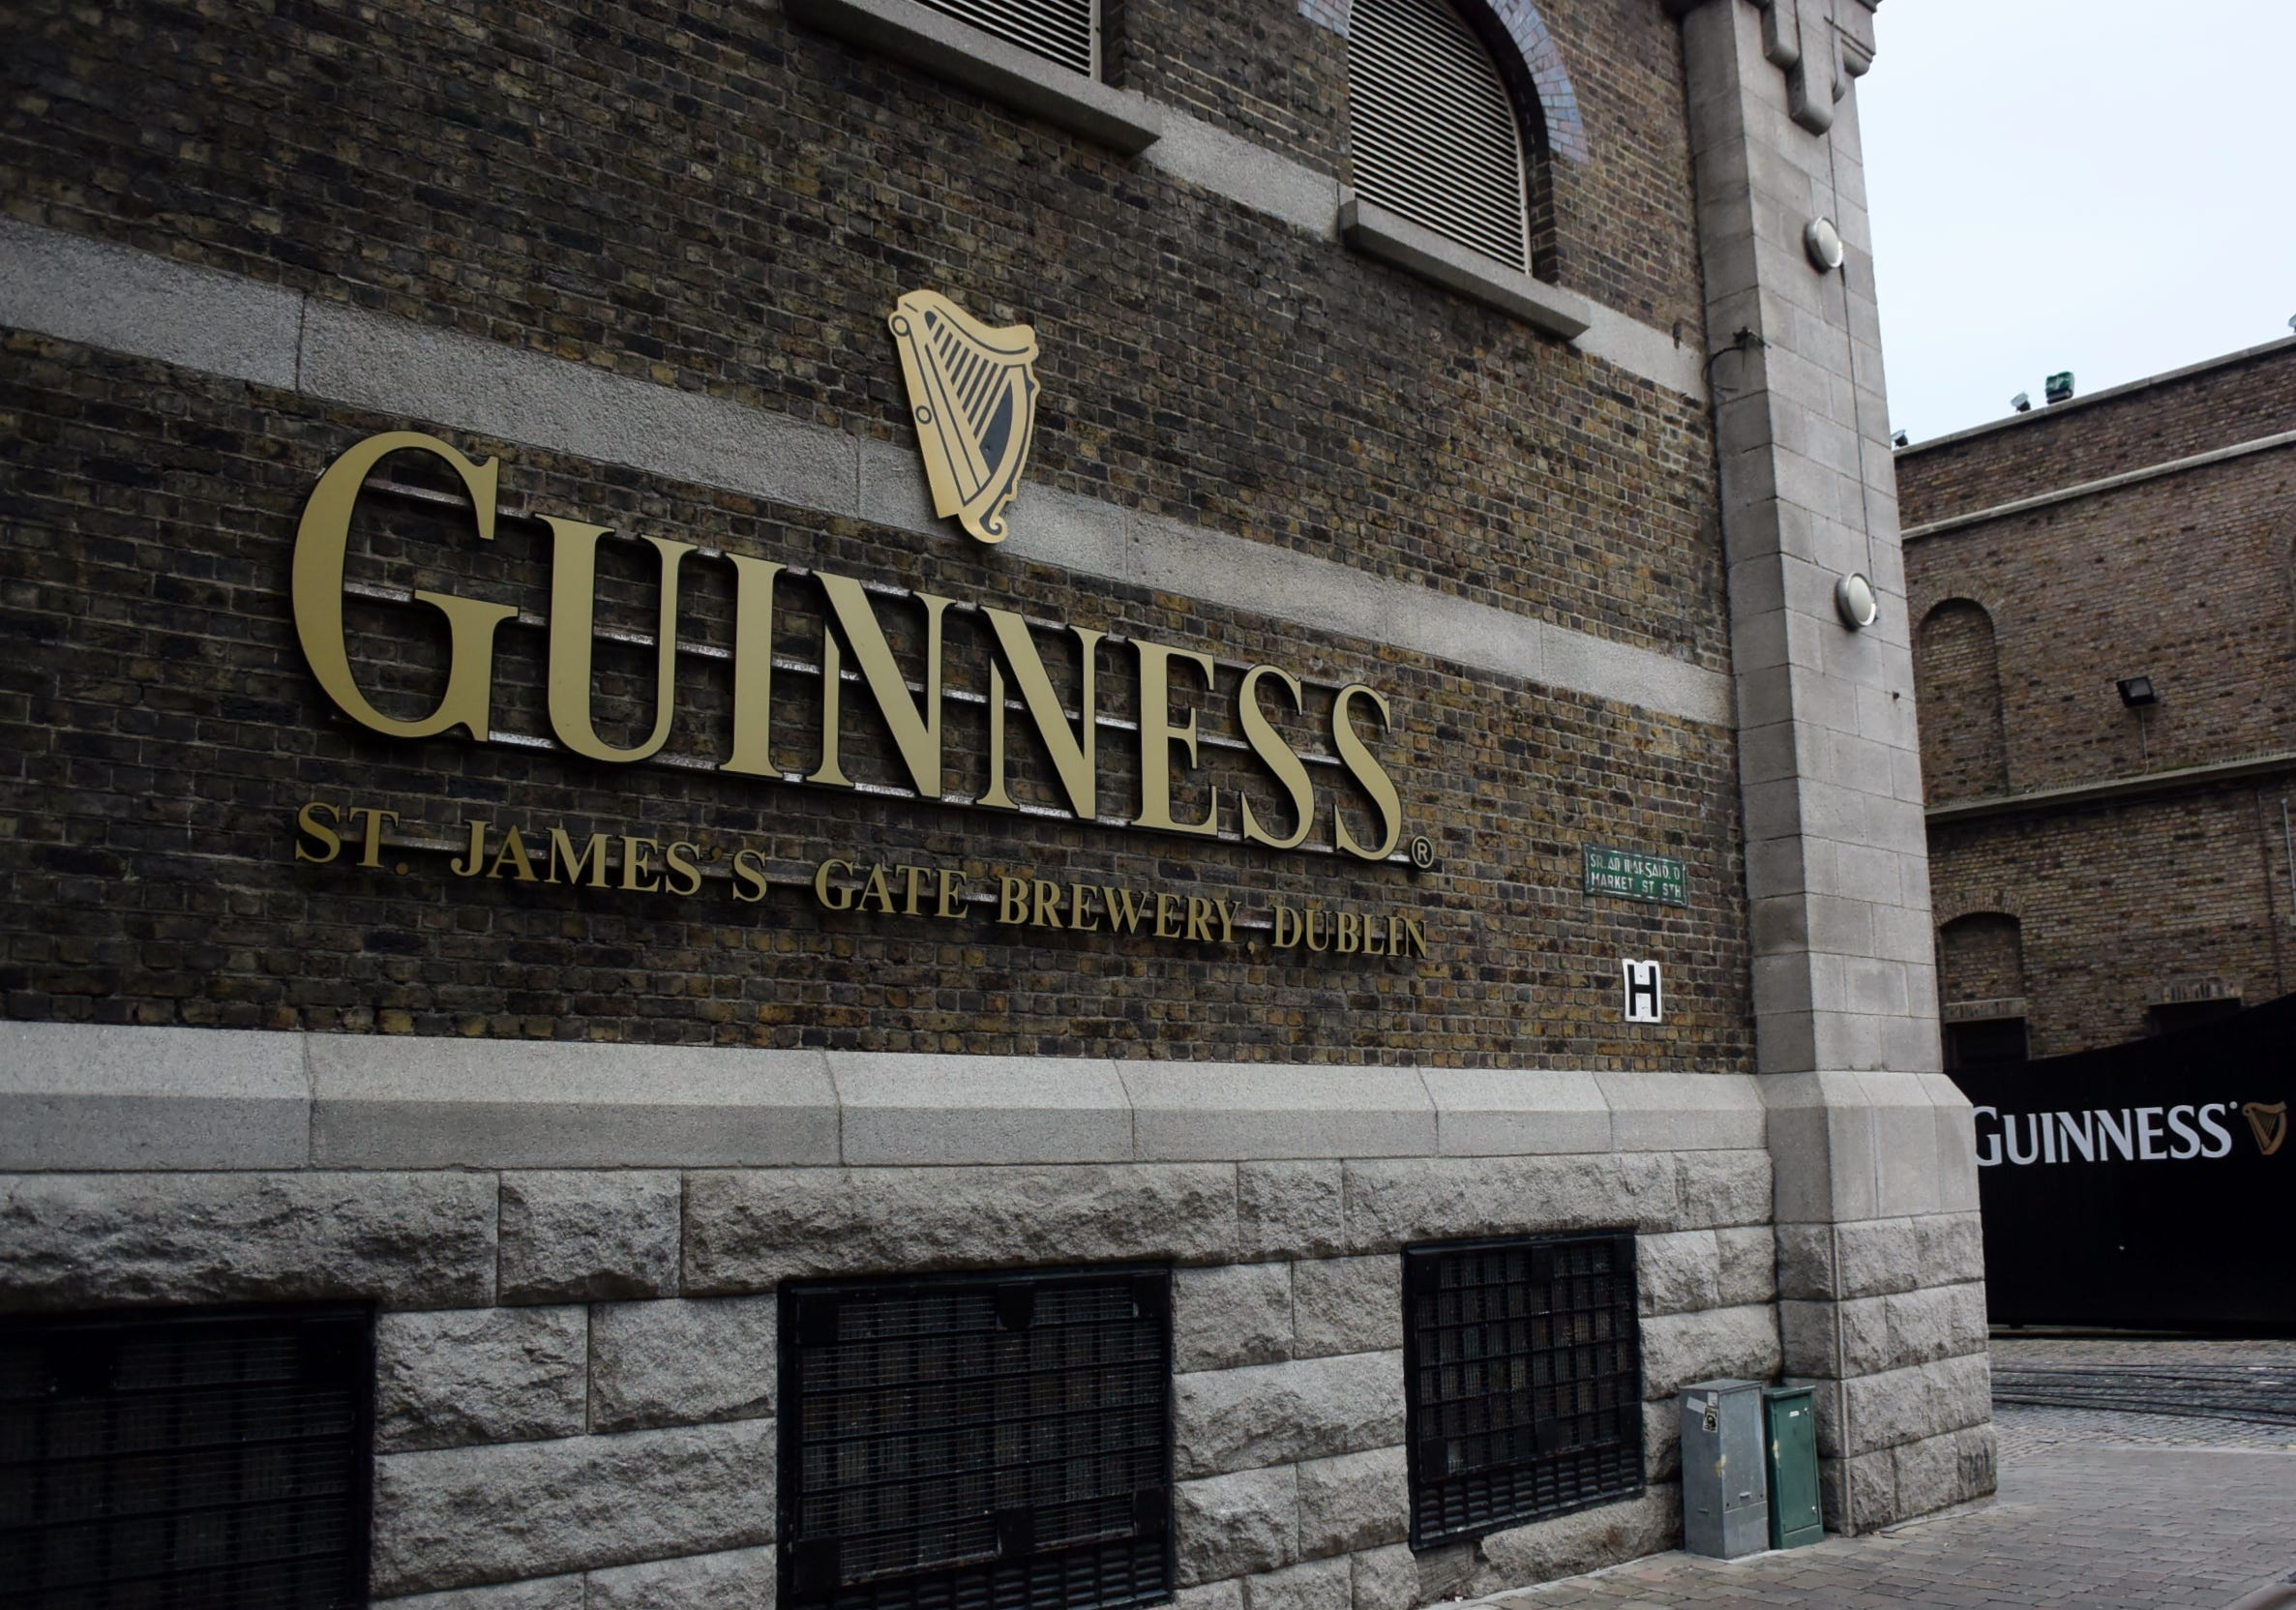 425f606fd67b7 636567795060501372-The-Guinness-campus-is-located-in-Dublin-Ireland-s-St.-James- Gate-credit-Susan-B.-Barnes.JPG